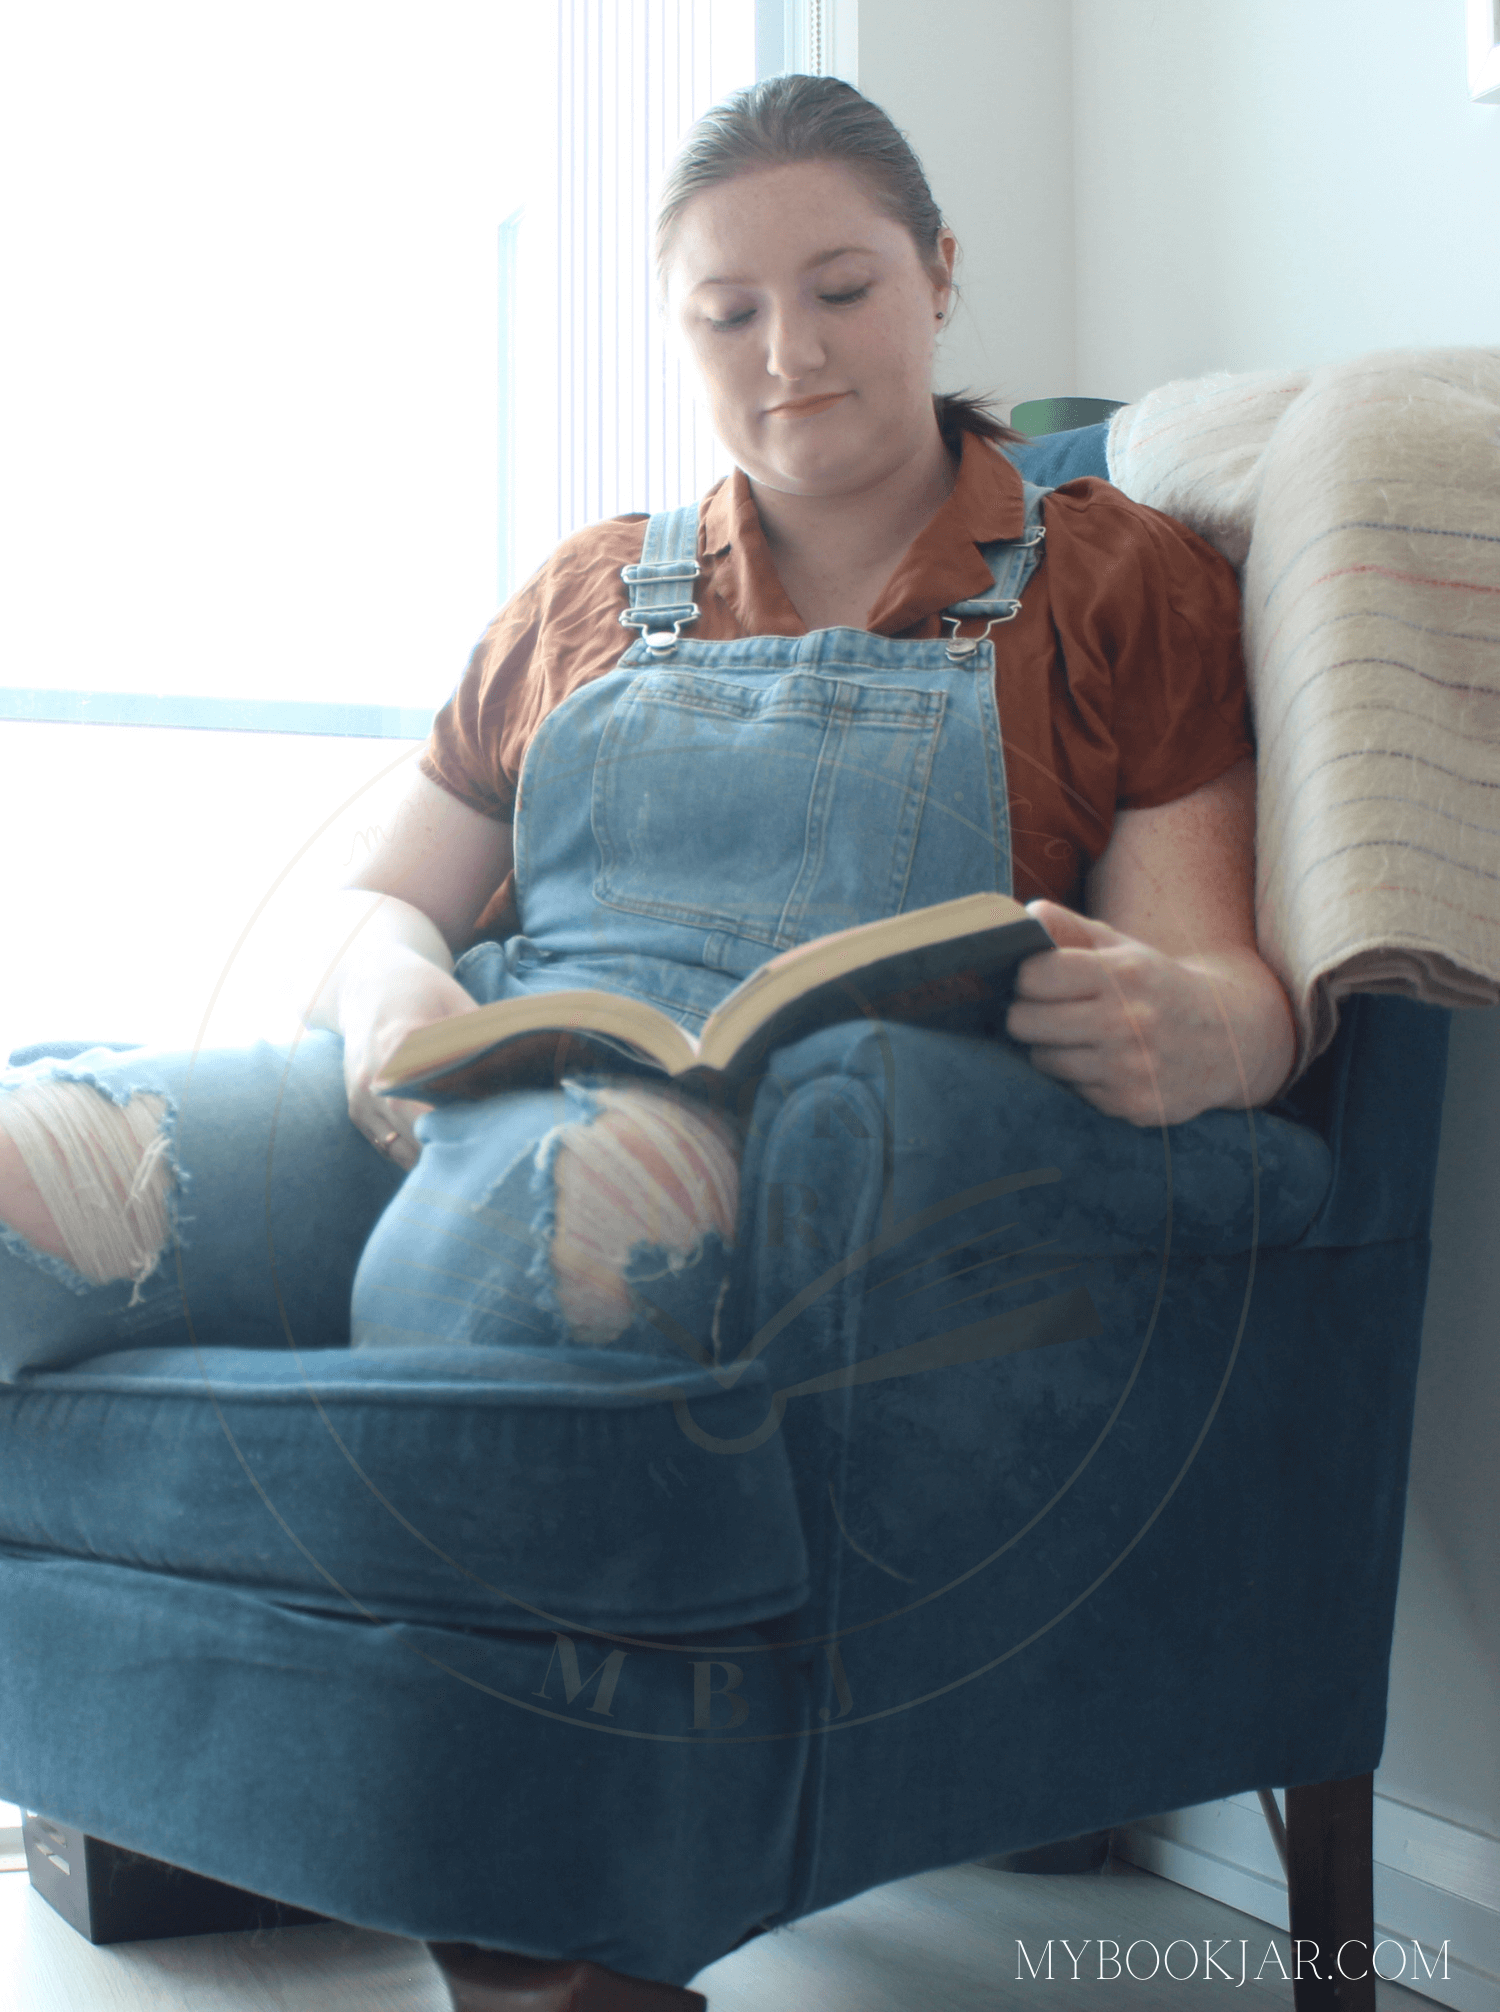 Favourite Places to Read image of Carmen in jean overalls and an orange collared shirt reading in her blue armchair before a window